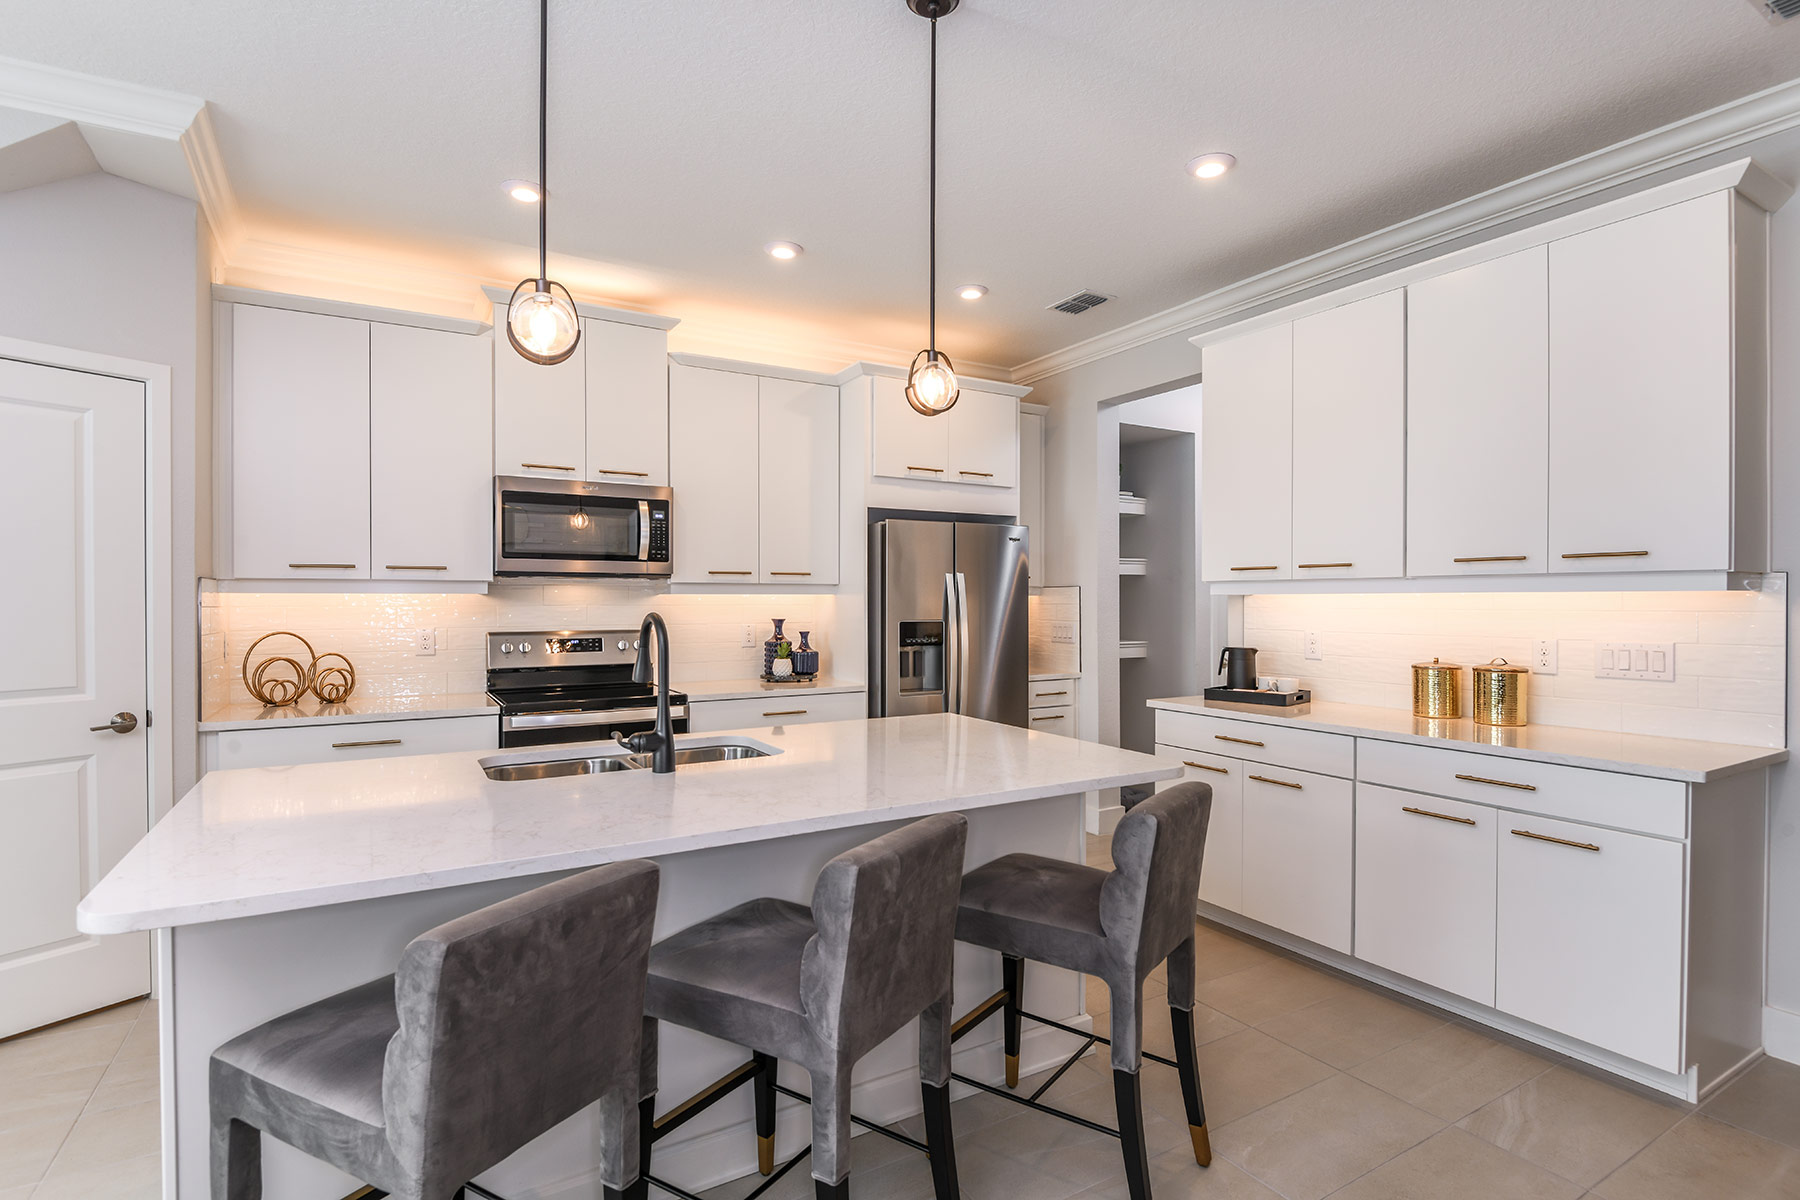 Marianna Plan Kitchen at Parkview at Long Lake Ranch in Lutz Florida by Mattamy Homes